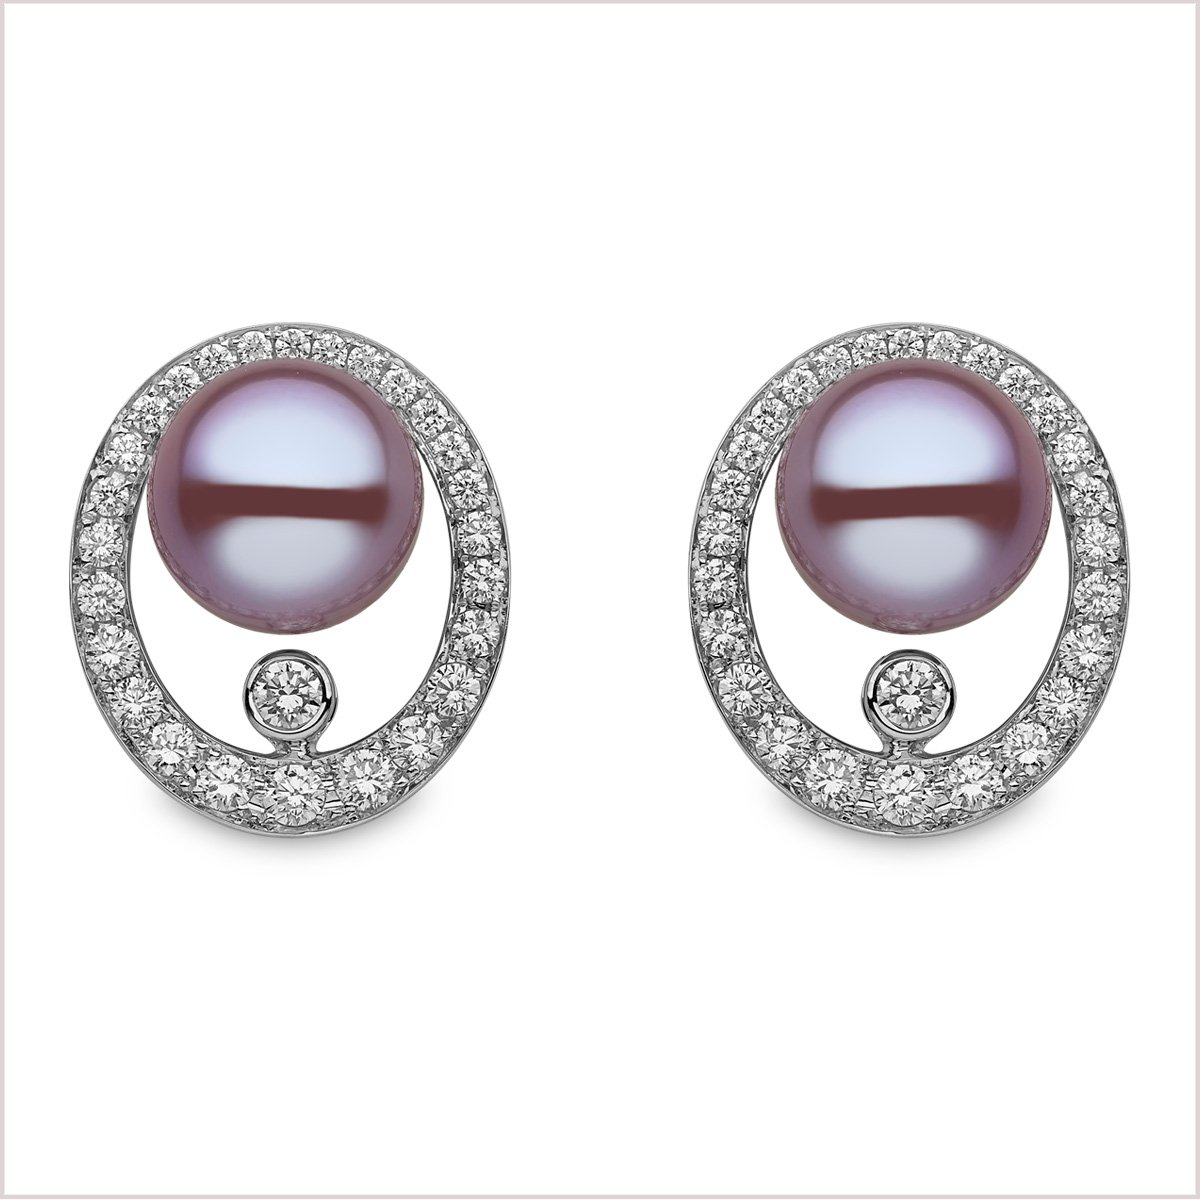 Radiant Orchid Diamond and Freshwater Pearl Earrings